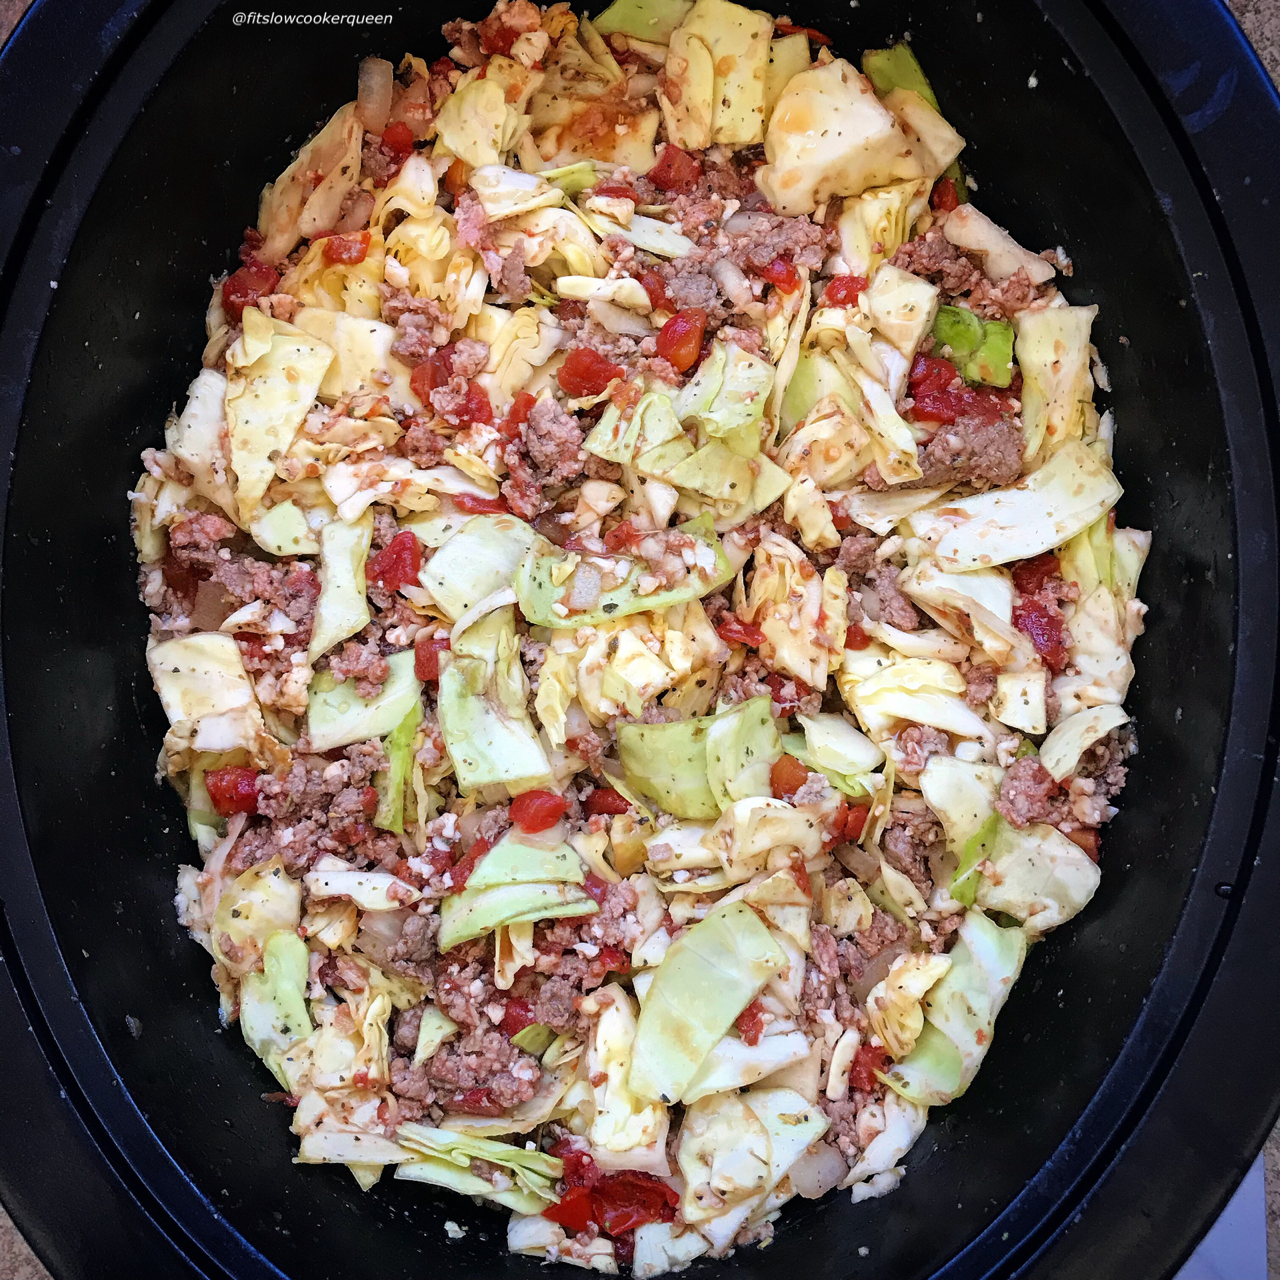 Instead of rolling your cabbage rolls, add the ingredients to the slow cooker and eat themunstuffed! This slow cooker dish has all the elements of a traditional cabbage roll, but without the fuss. It's also low-carb, paleo and whole30.